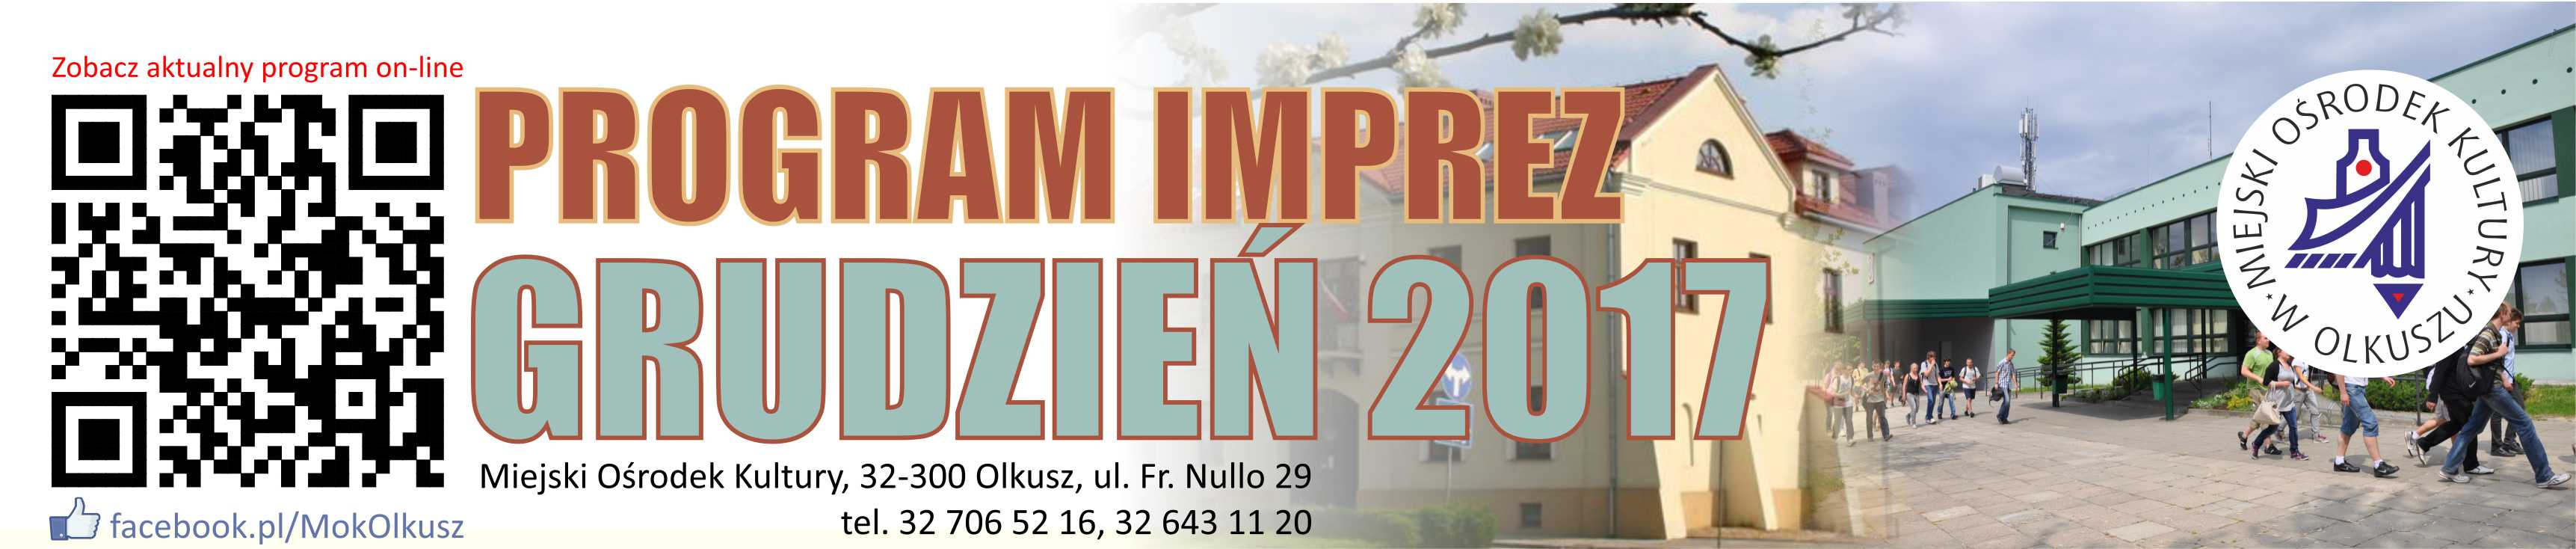 program MOK grudzien 2017 baner